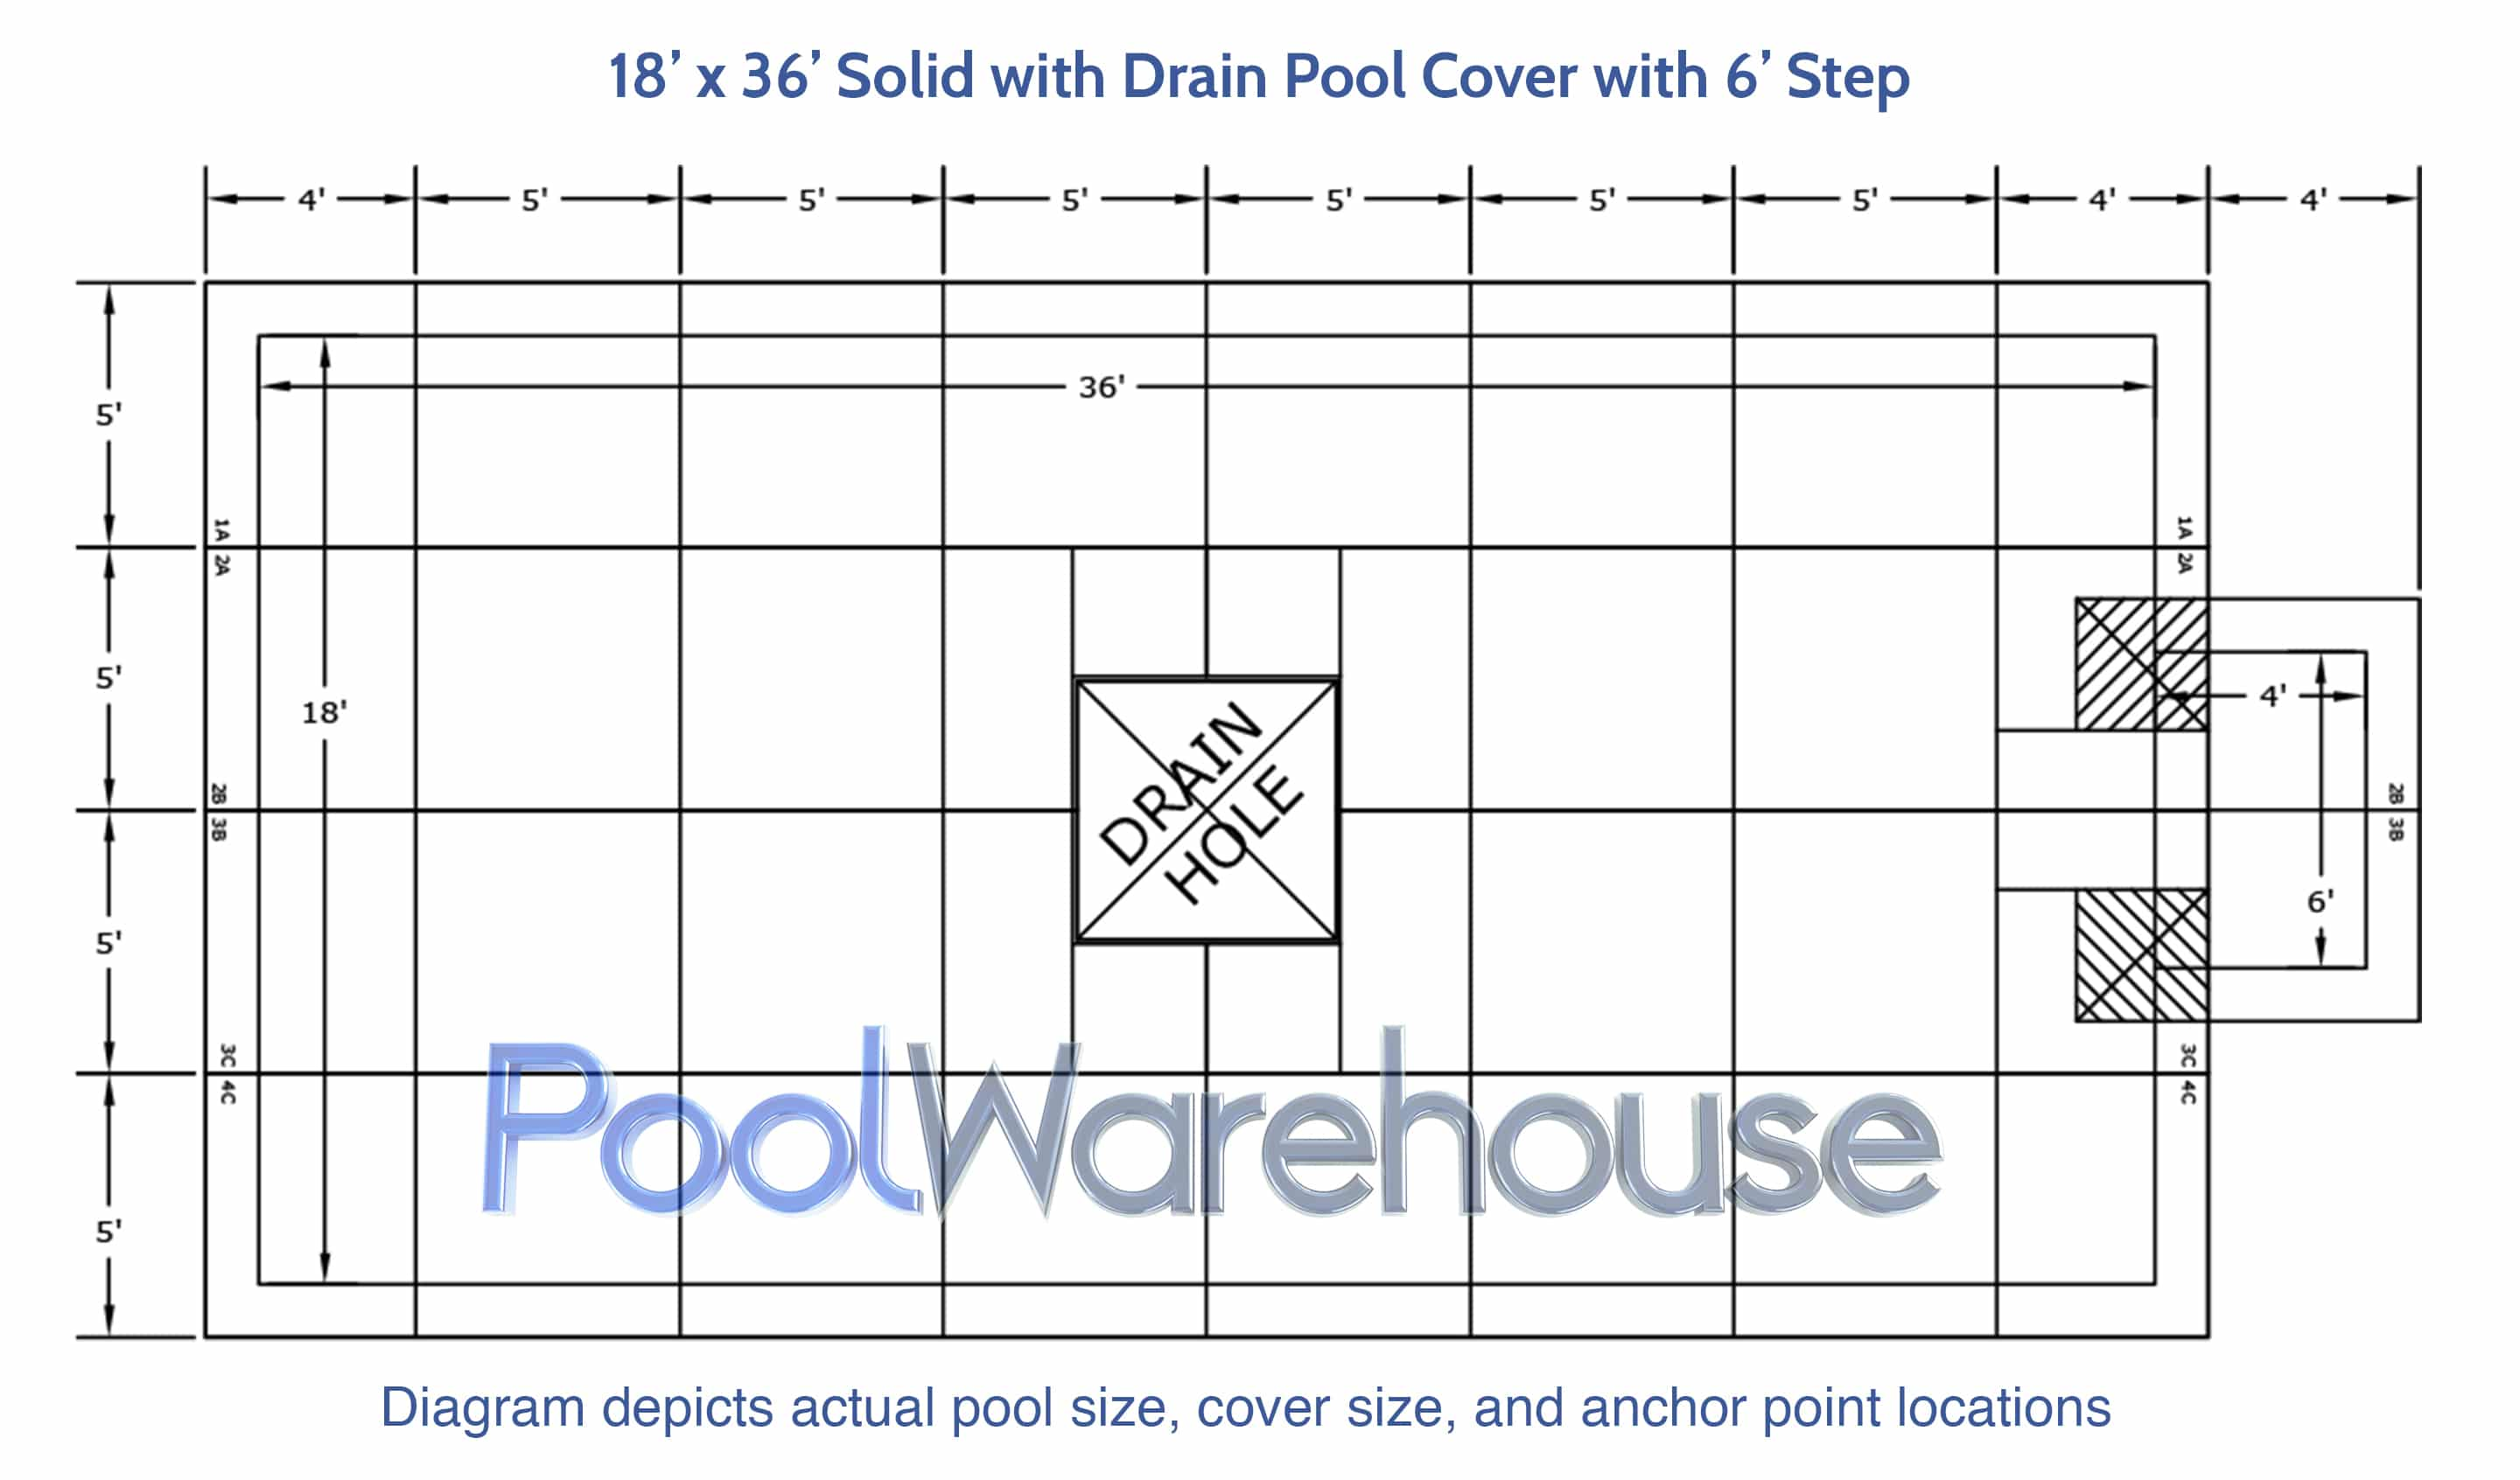 18 X 36 Solid Safety Pool Cover With Step And 20 Yr Warranty Light Wiring Diagram On Automatic Replacement Parts Drain 6